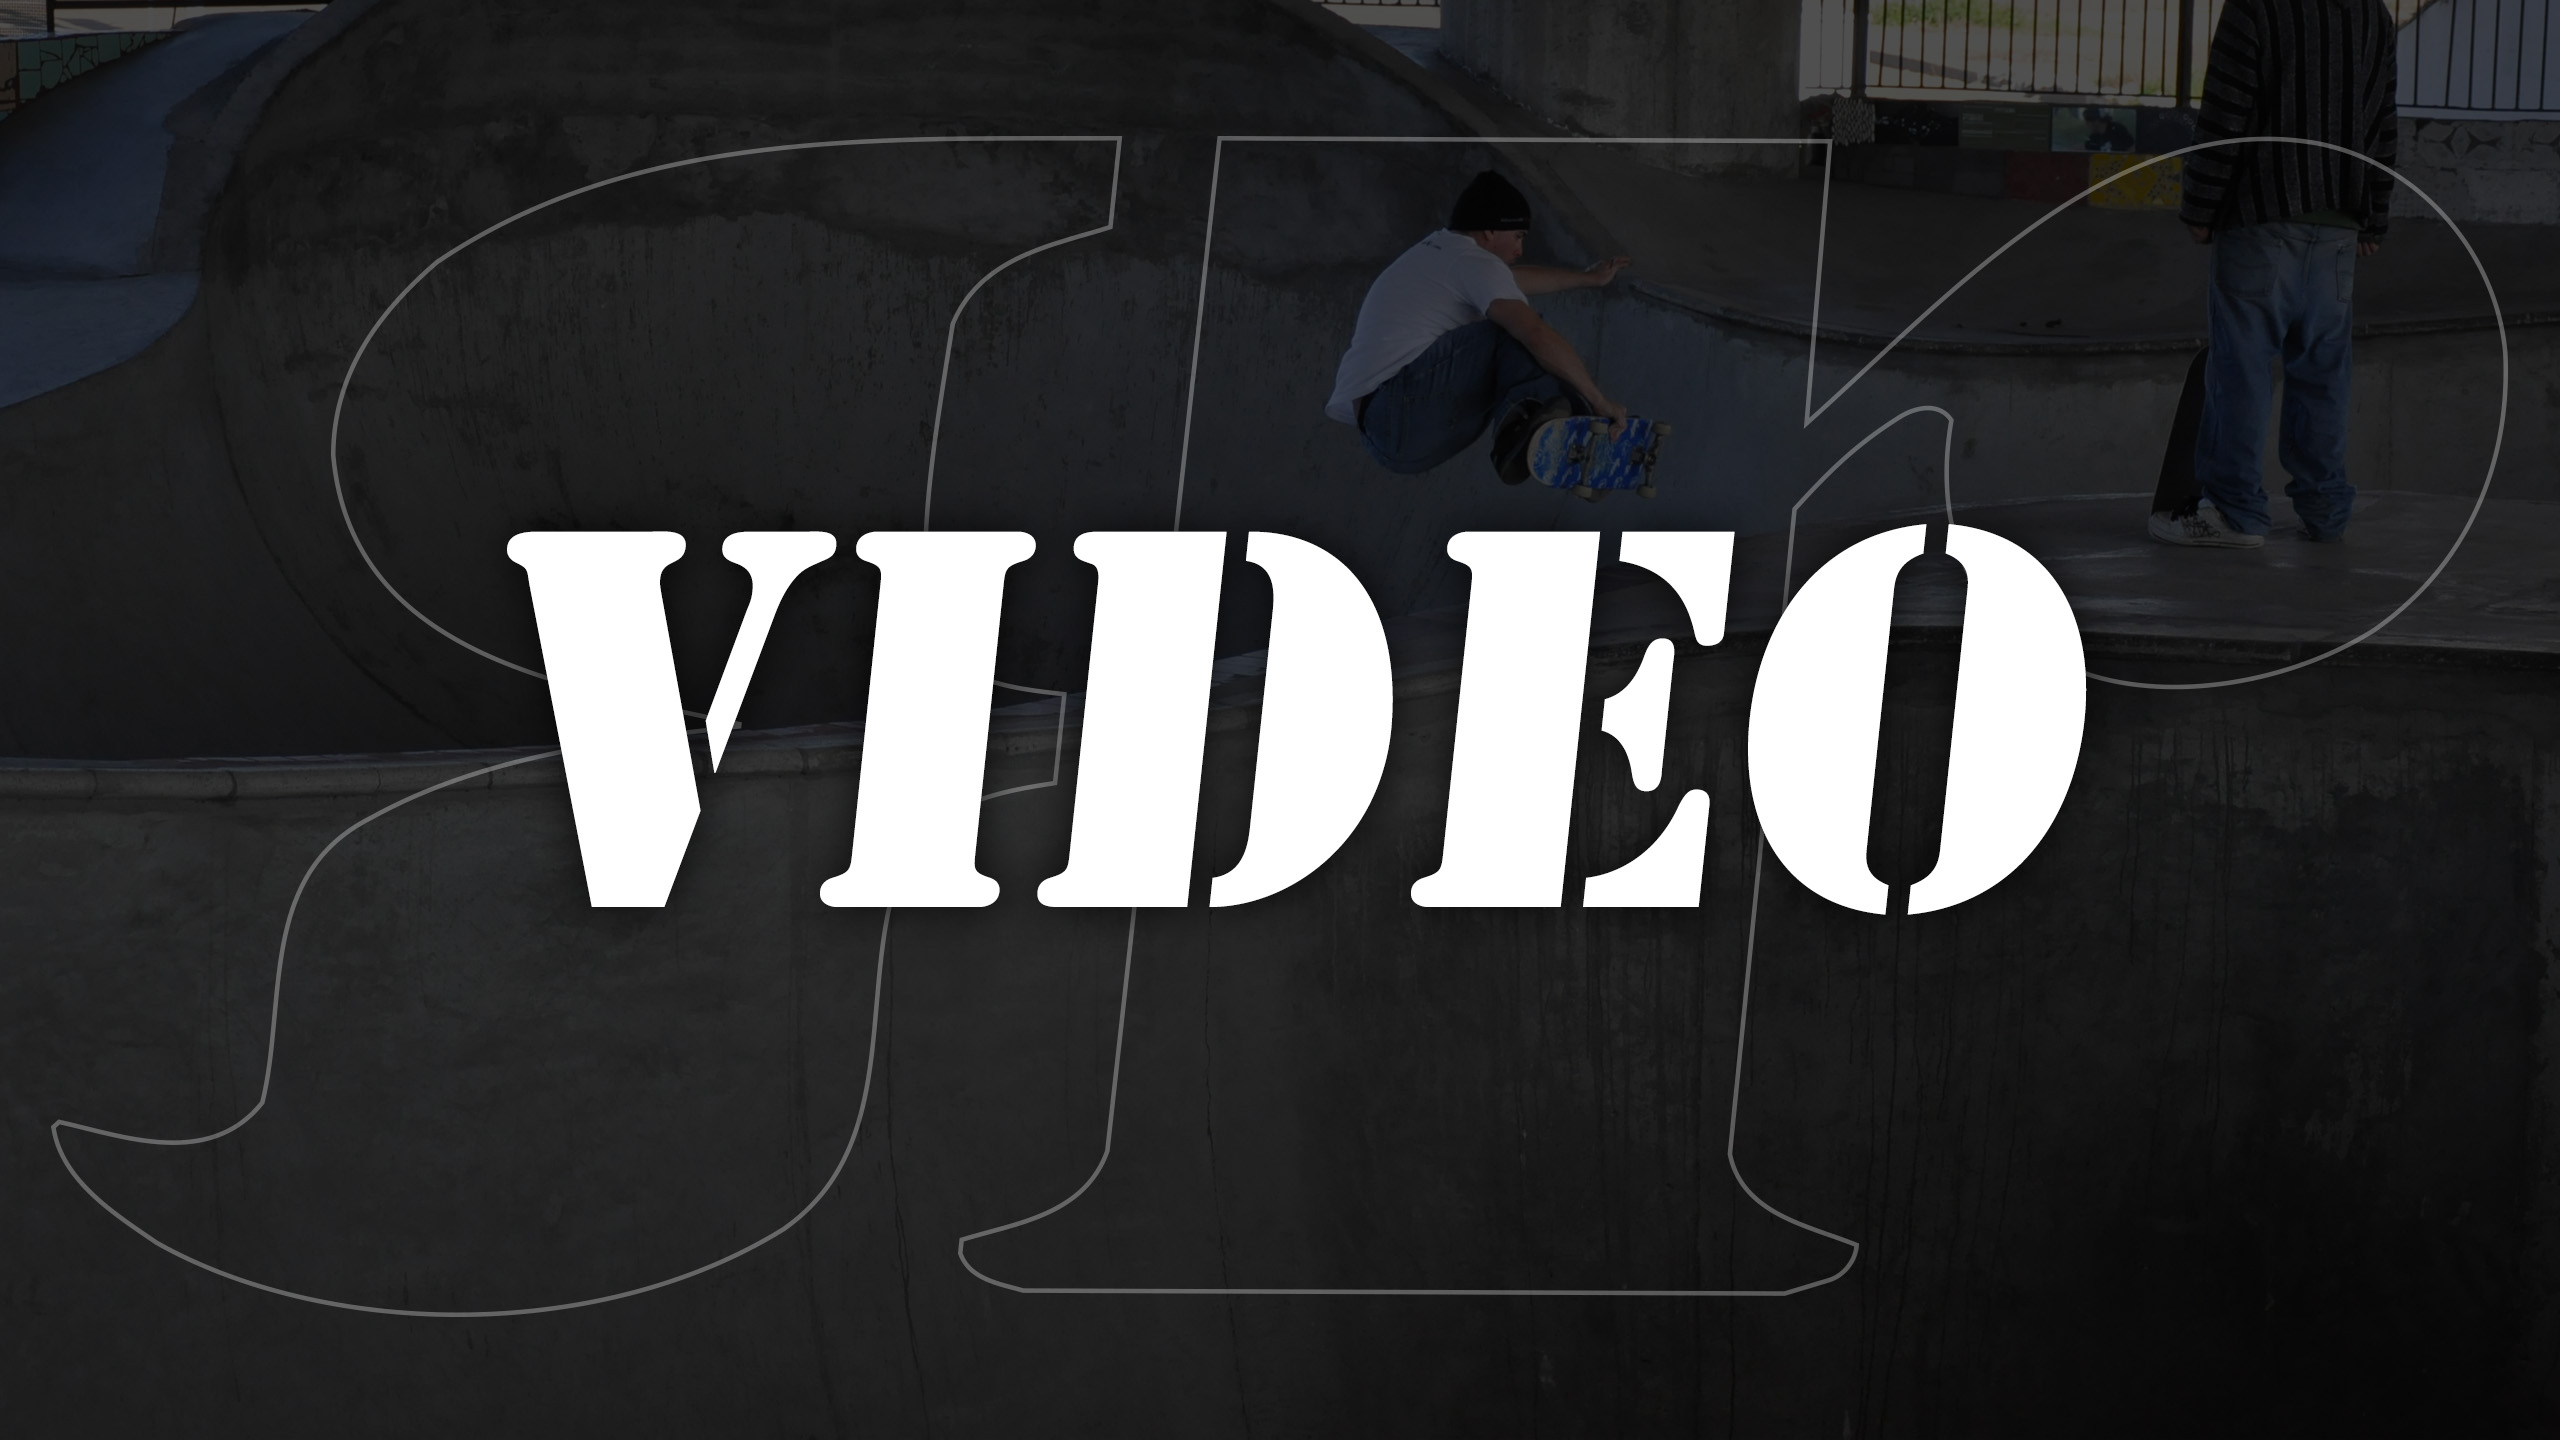 Revoked Skateboard Video Footage